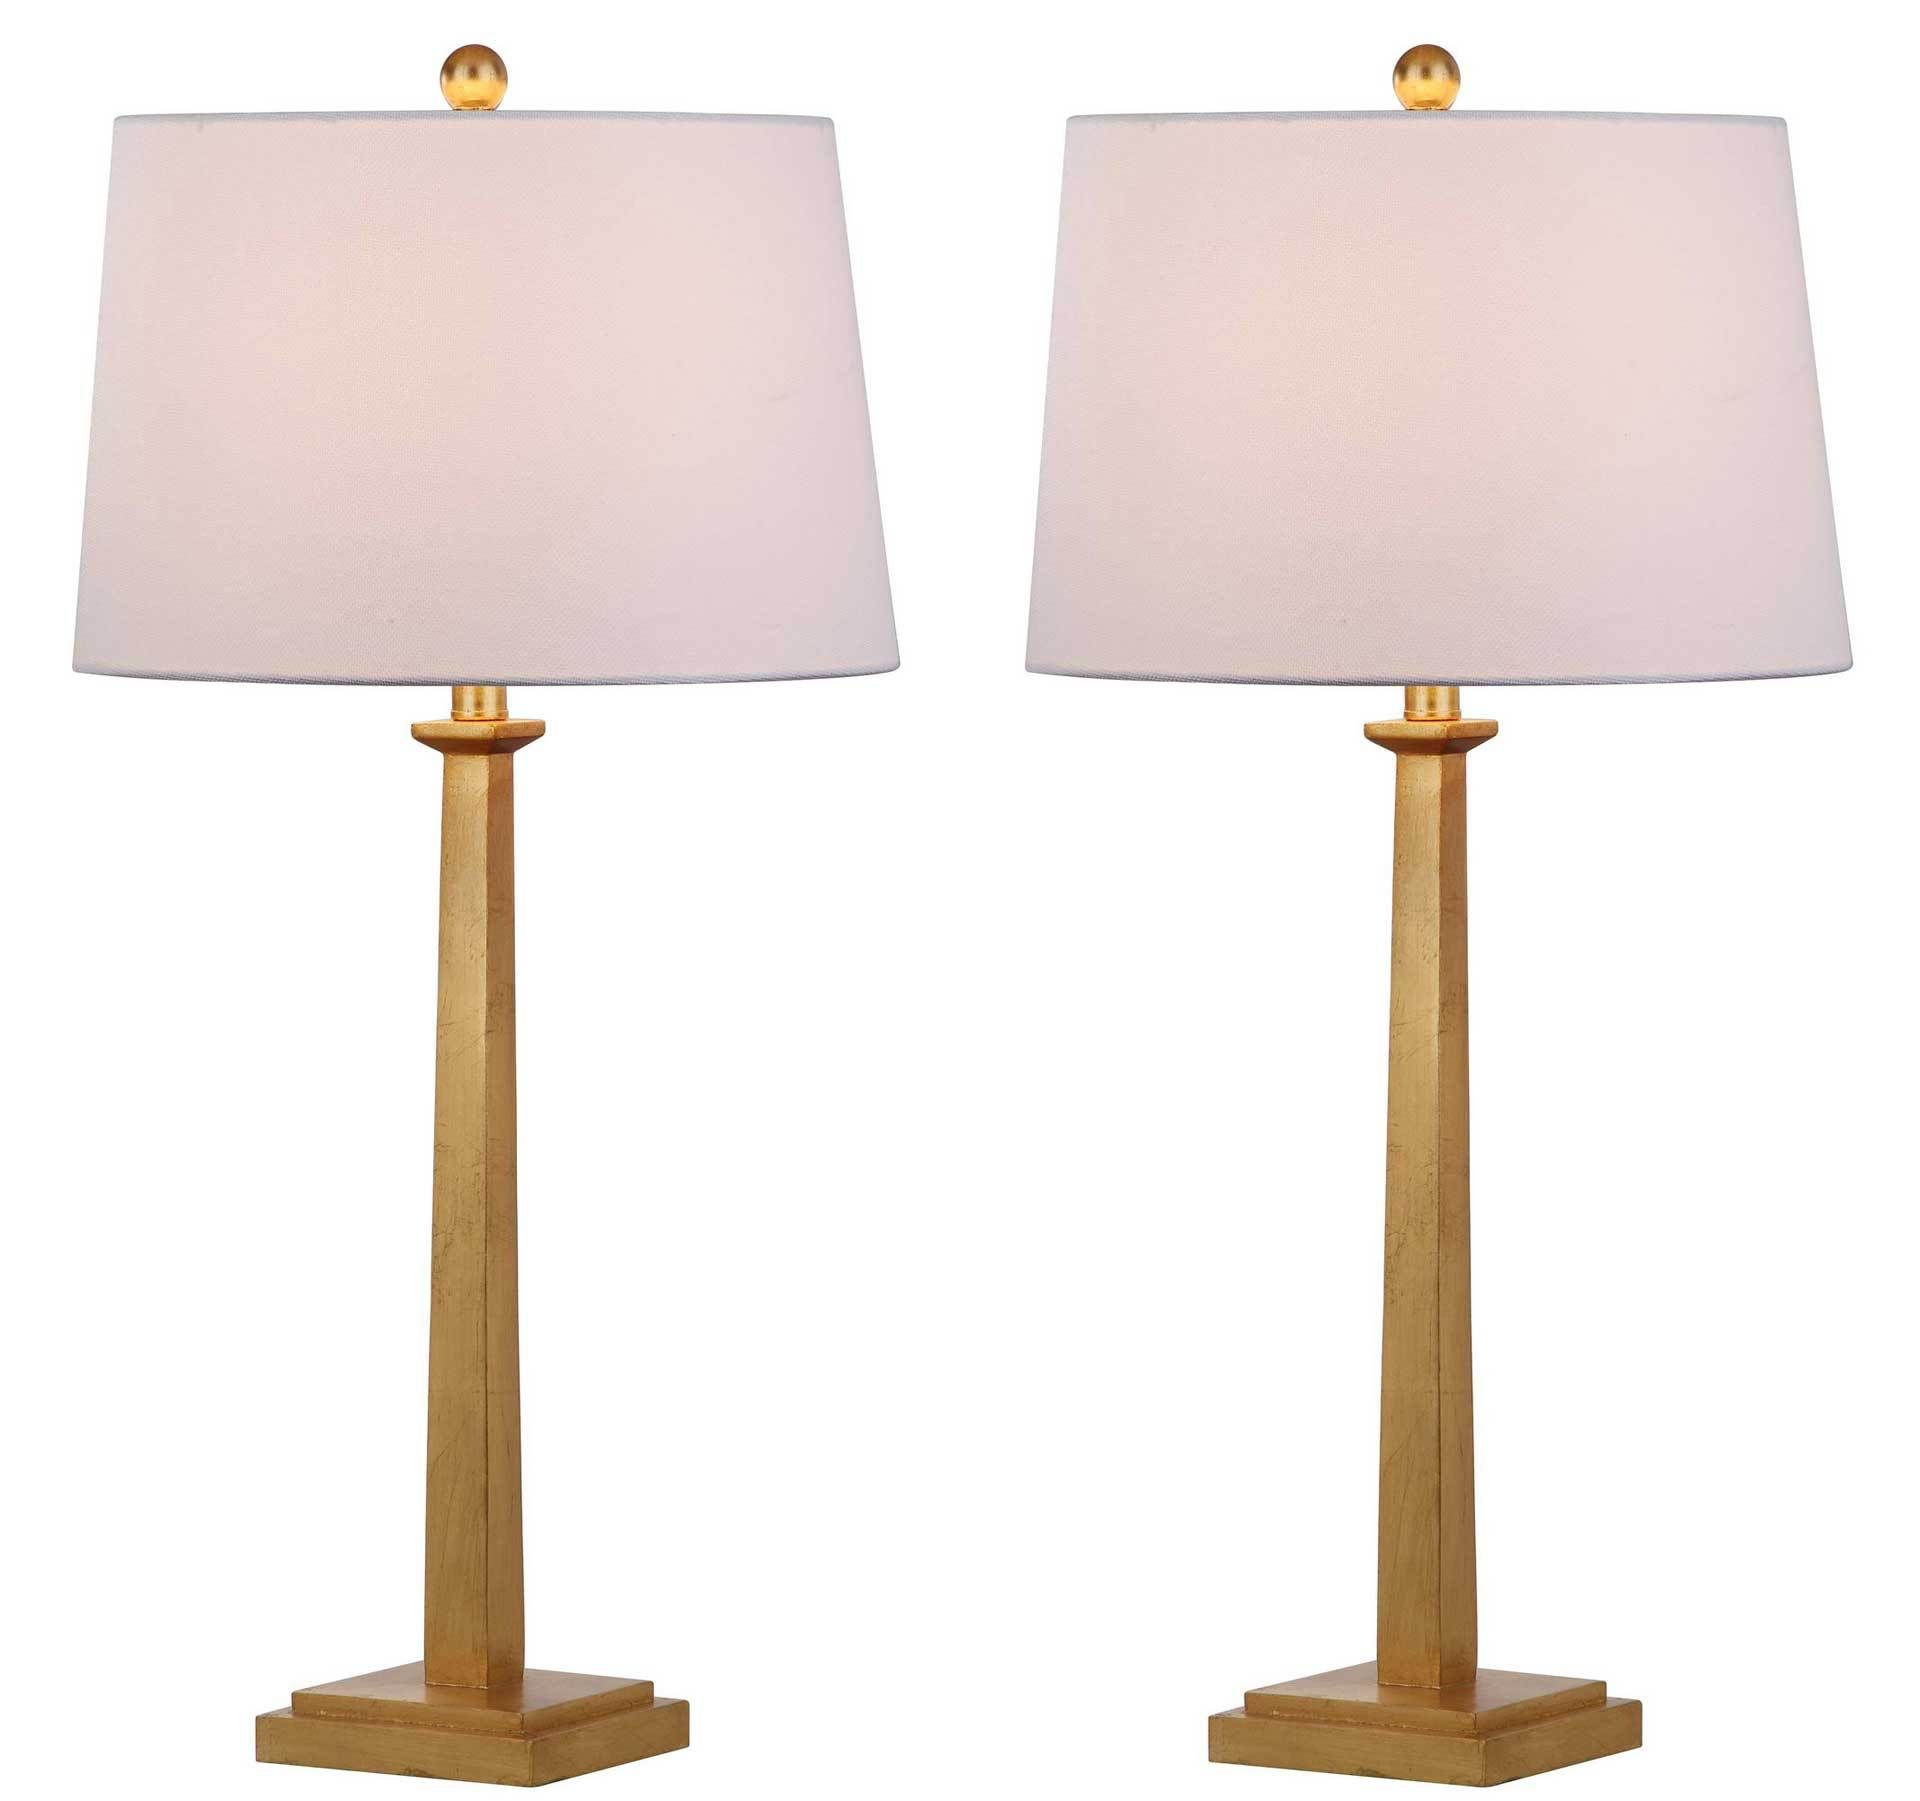 An iconic pre war apartment on new yorks upper east side inspired this modern table lamp finely crafted its gold finish illuminates any living room or